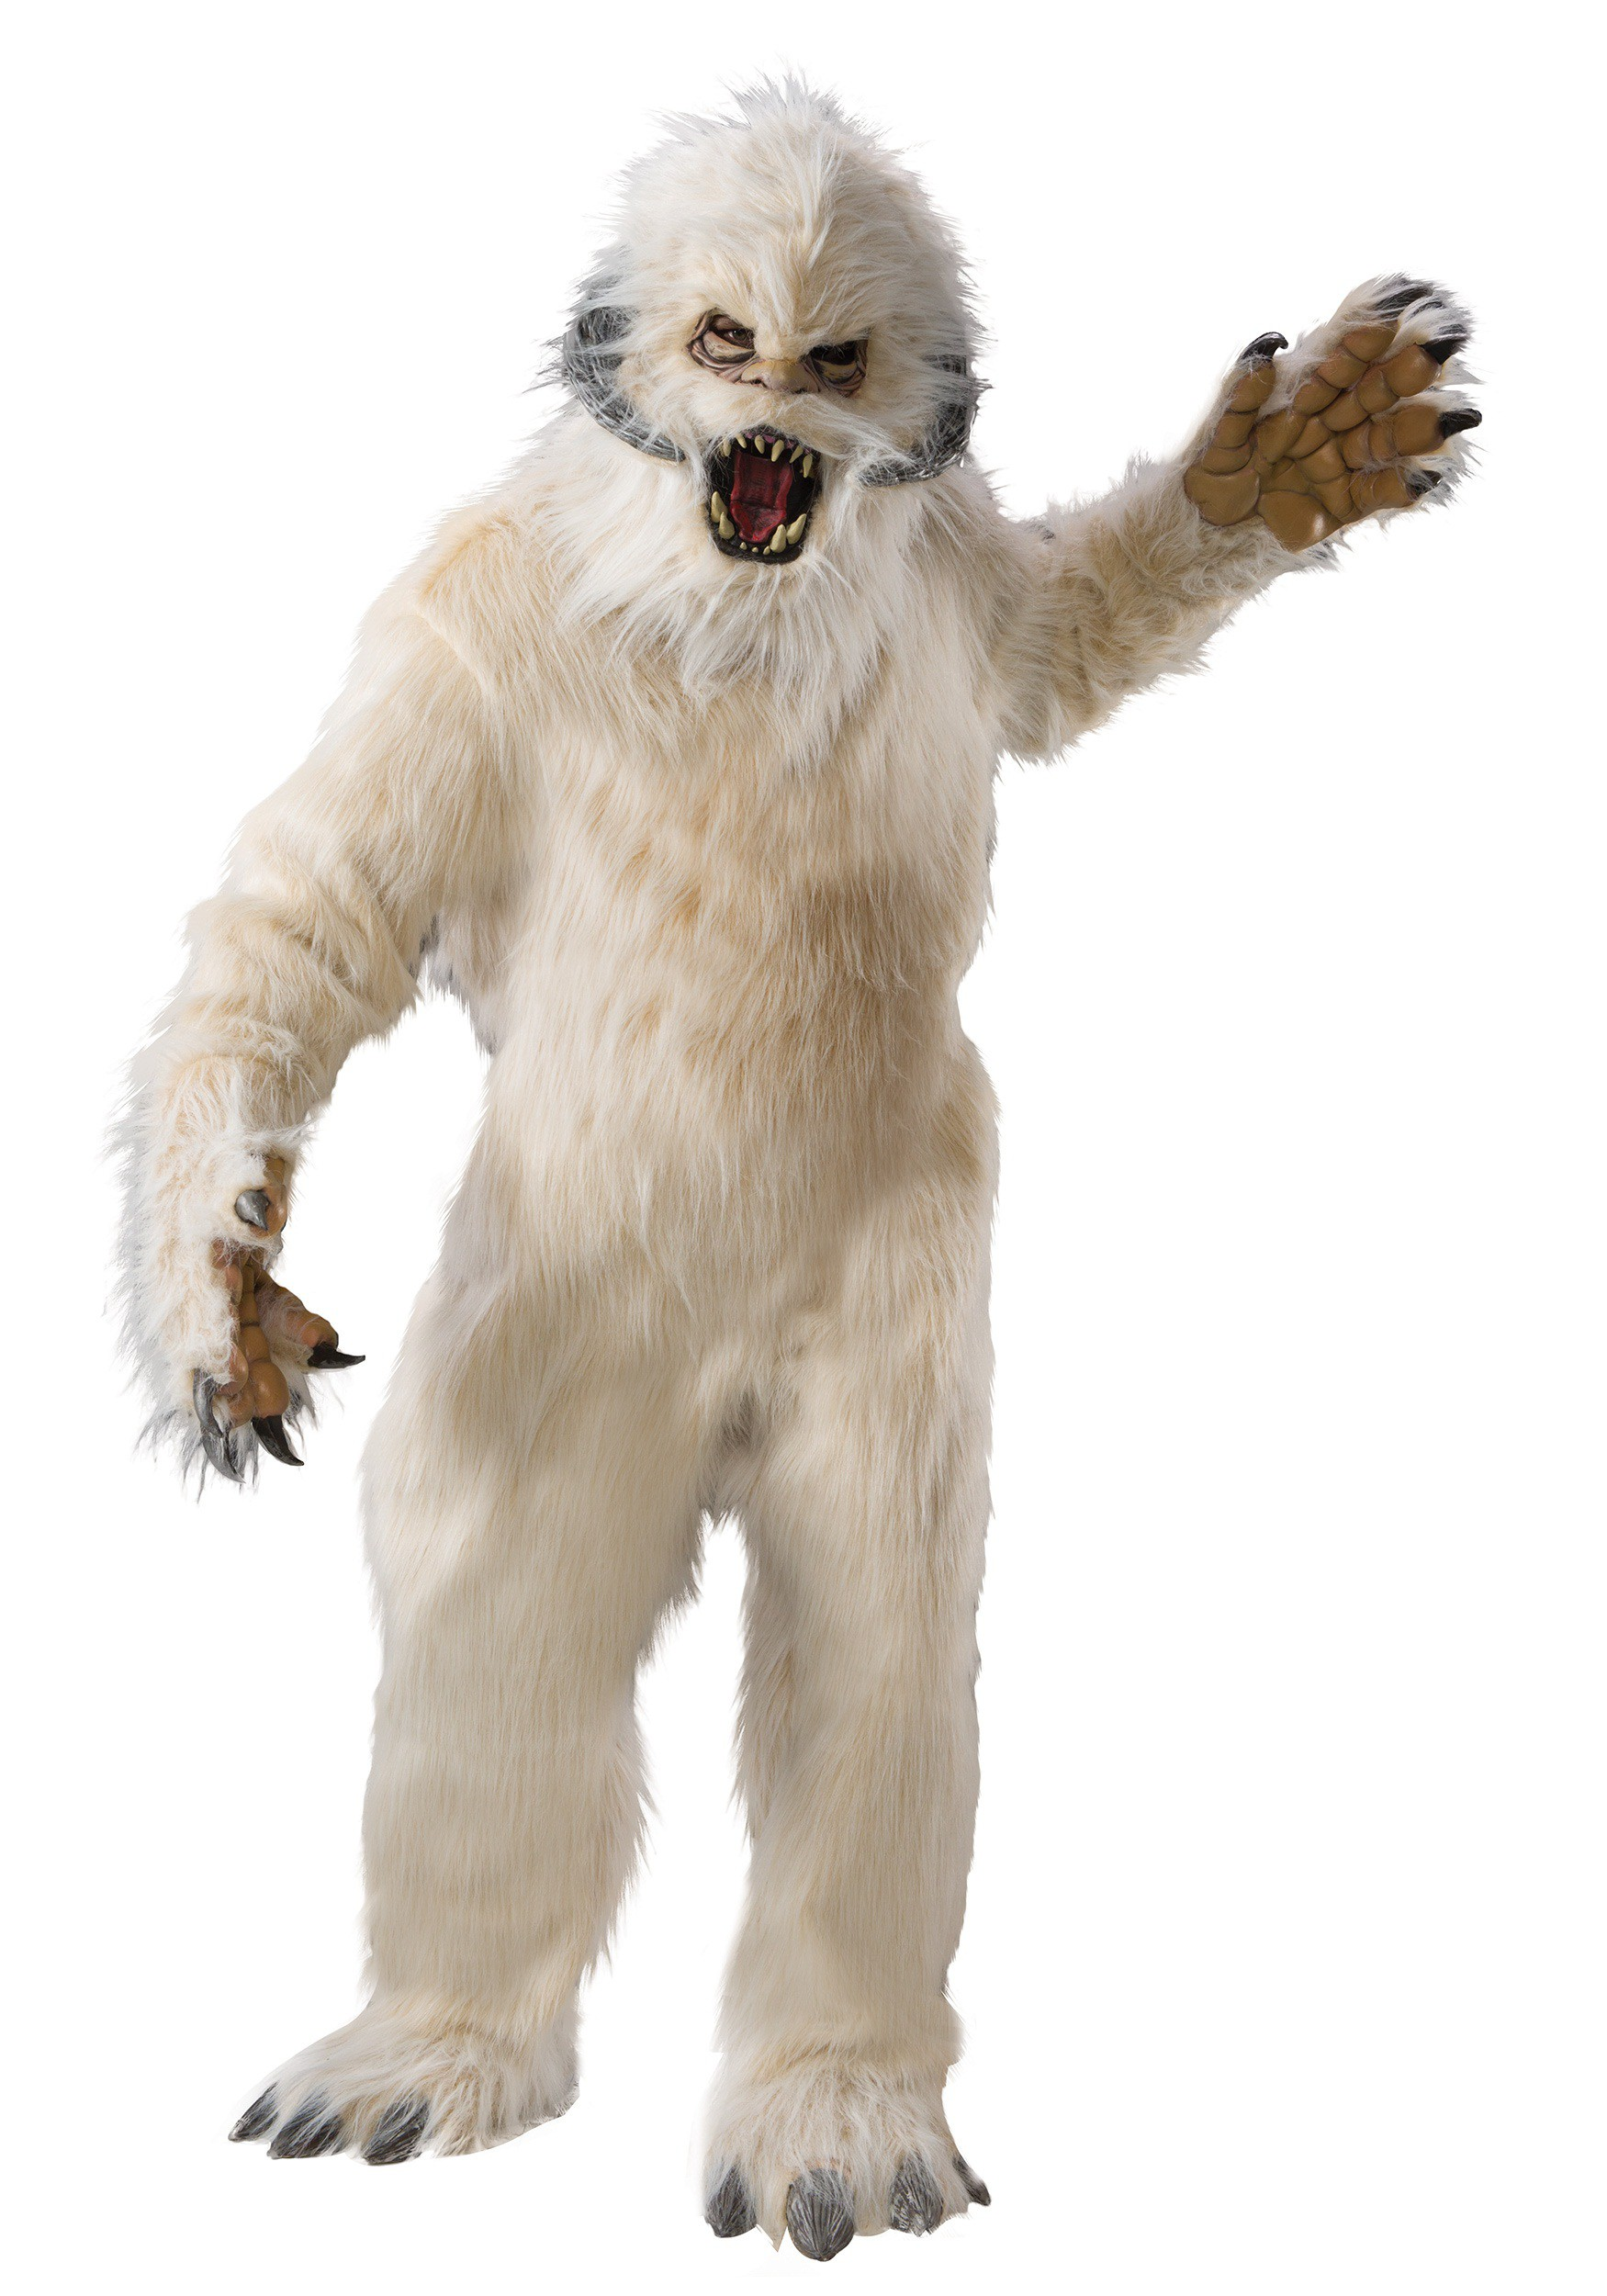 Star wars wampa costume for pets